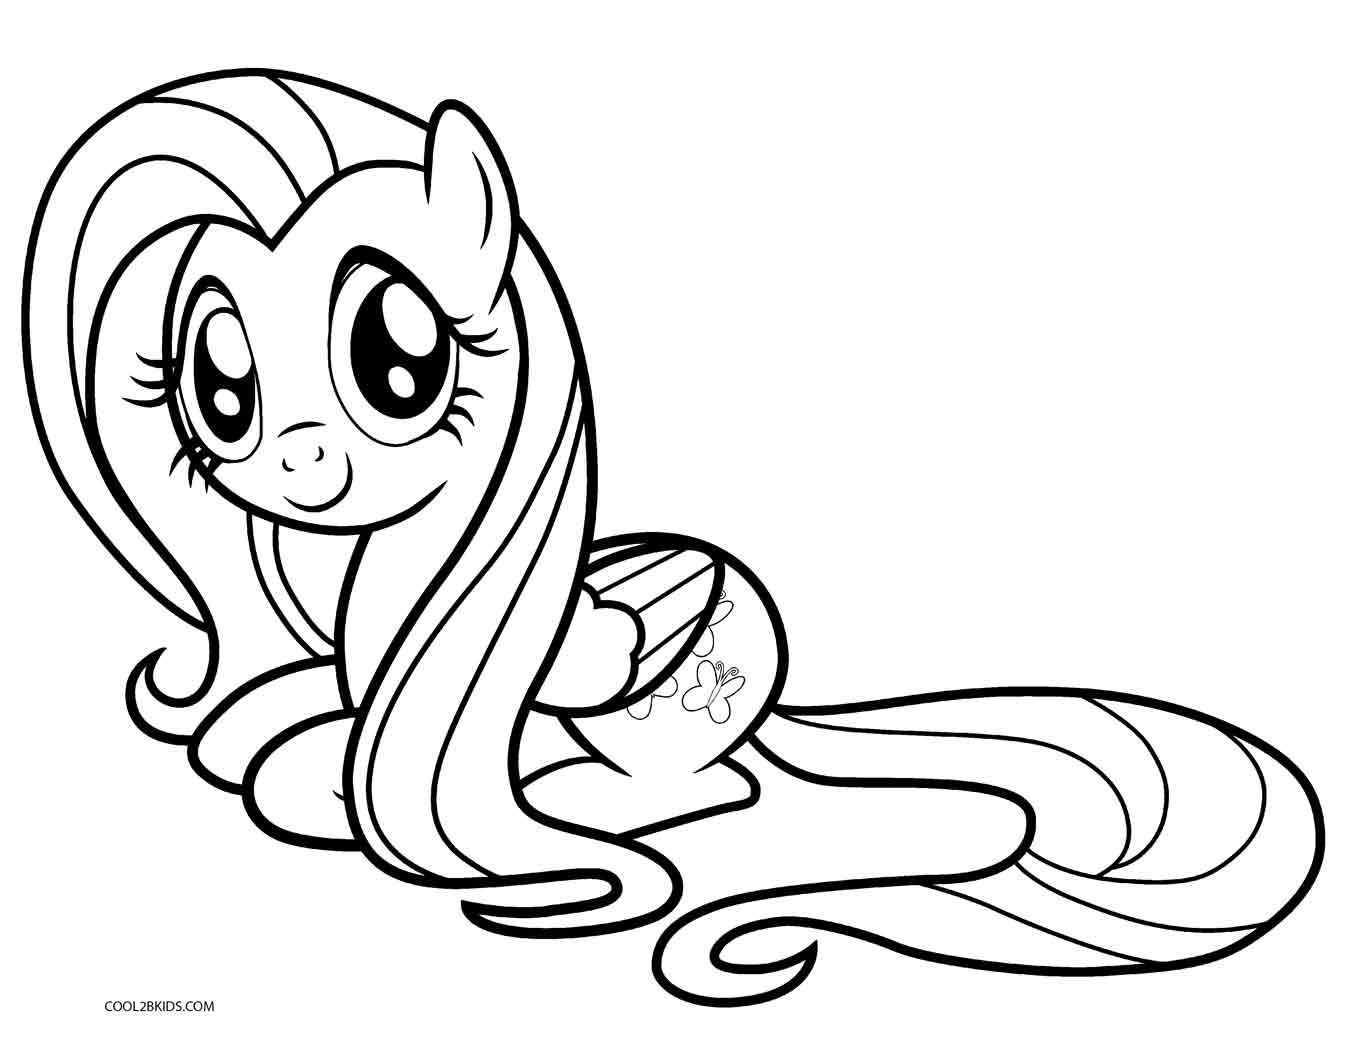 coloring pages of ponies free printable my little pony coloring pages for kids pages of coloring ponies